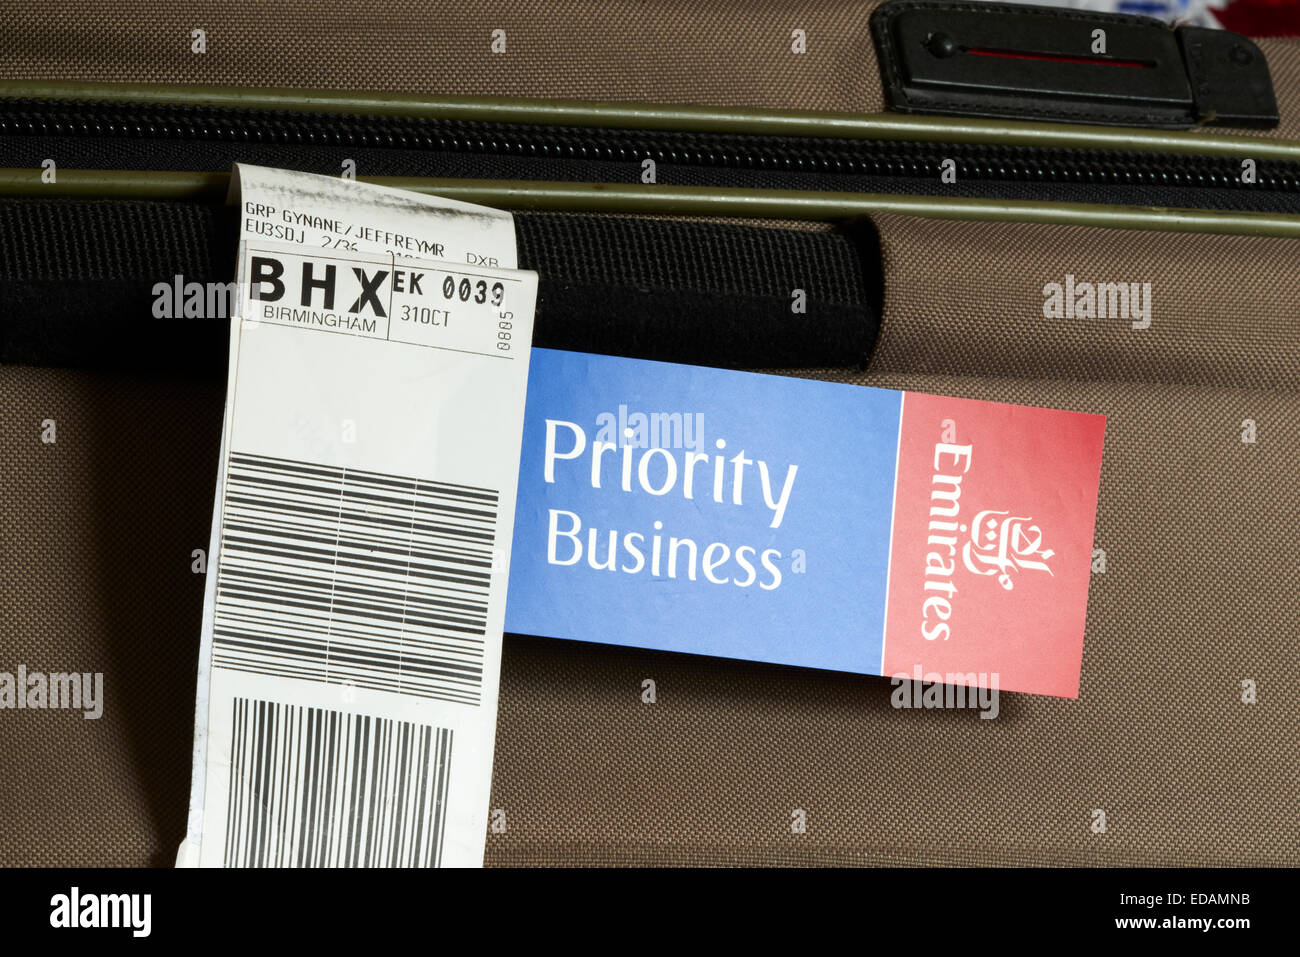 Priority Tag: Emirates Priority Business Class Luggage Tag On A Suitcase